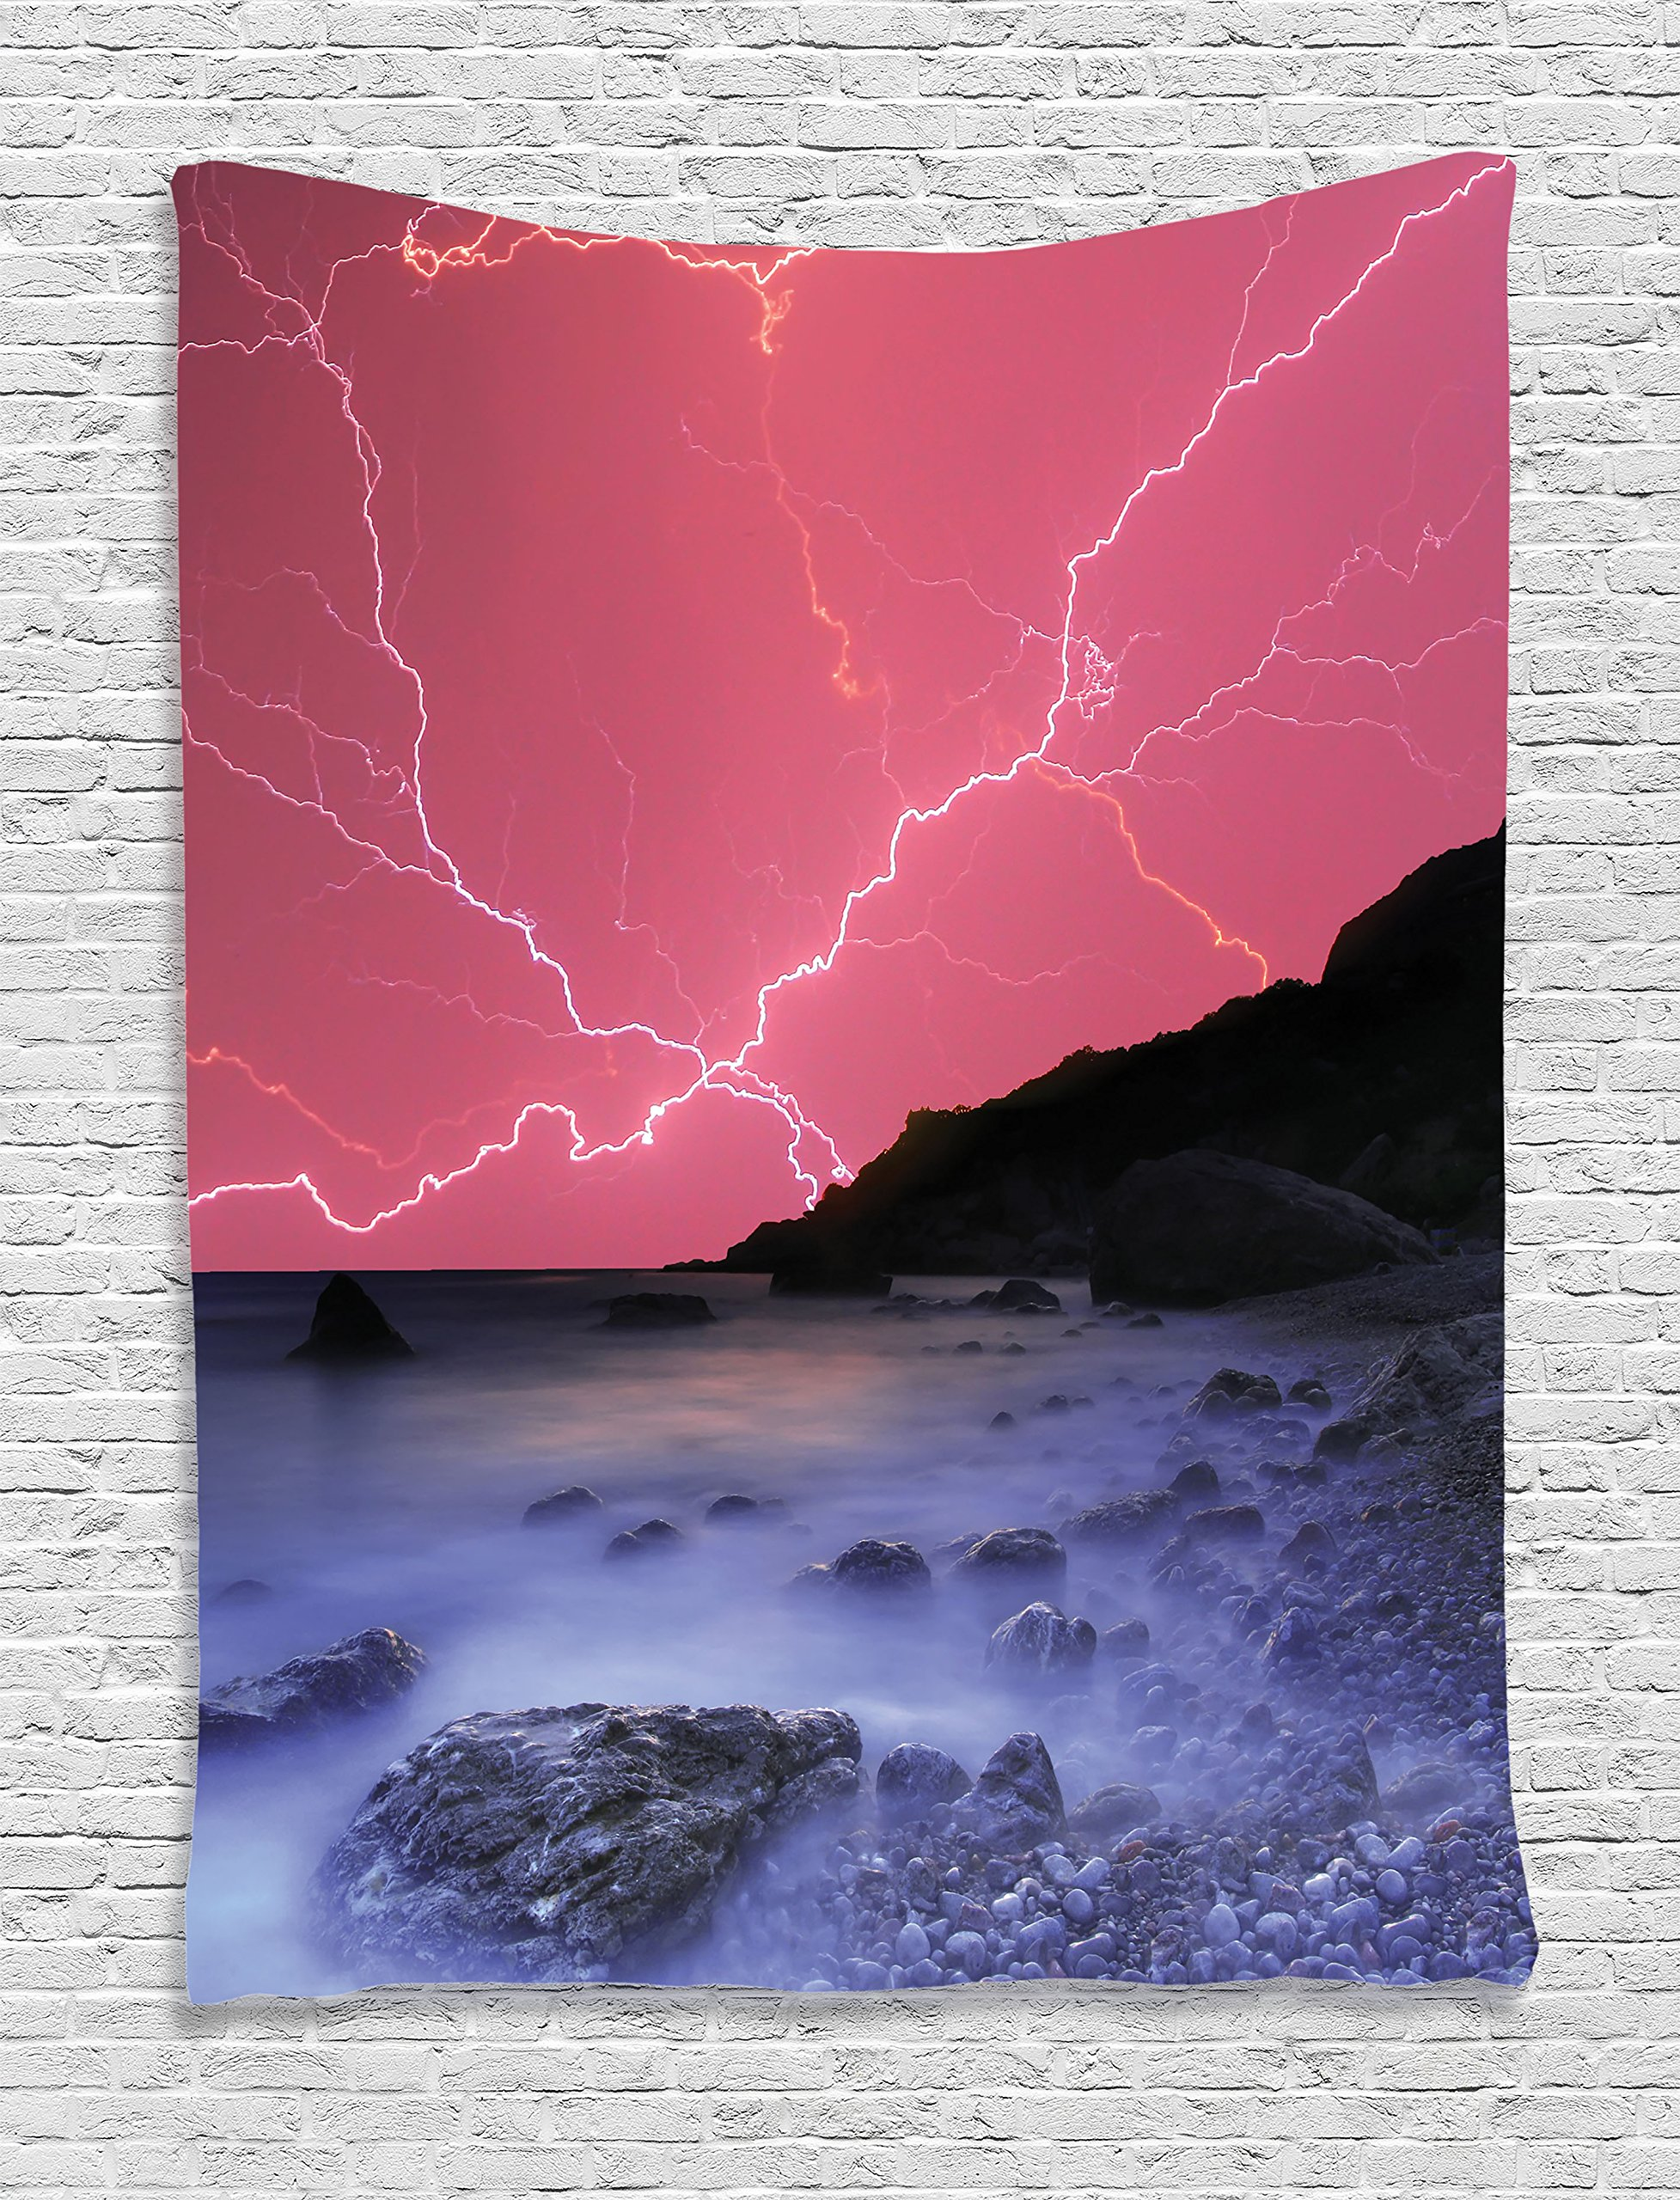 Ambesonne Lake House Decor Tapestry, Thunderstorm Bolts with Vivid Colorful Sky Like Solar Lights Phenomenal Nature Picture, Bedroom Living Room Dorm Decor, 40 W x 60 L inches, Pink Grey